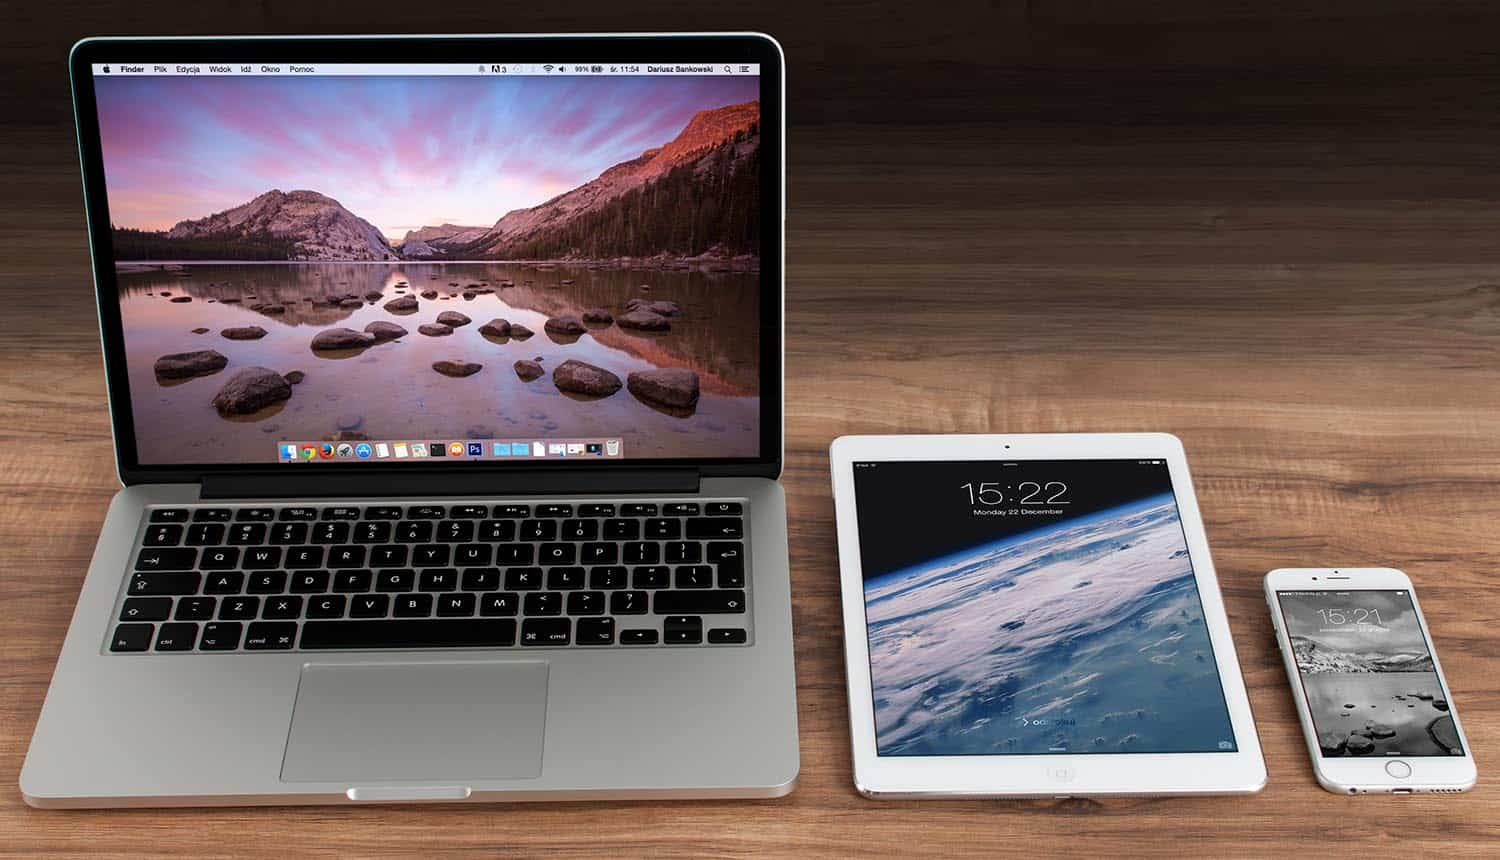 Image of Macbook, iPad and iPhone representing how online advertising will be disrupted by Apple's privacy play